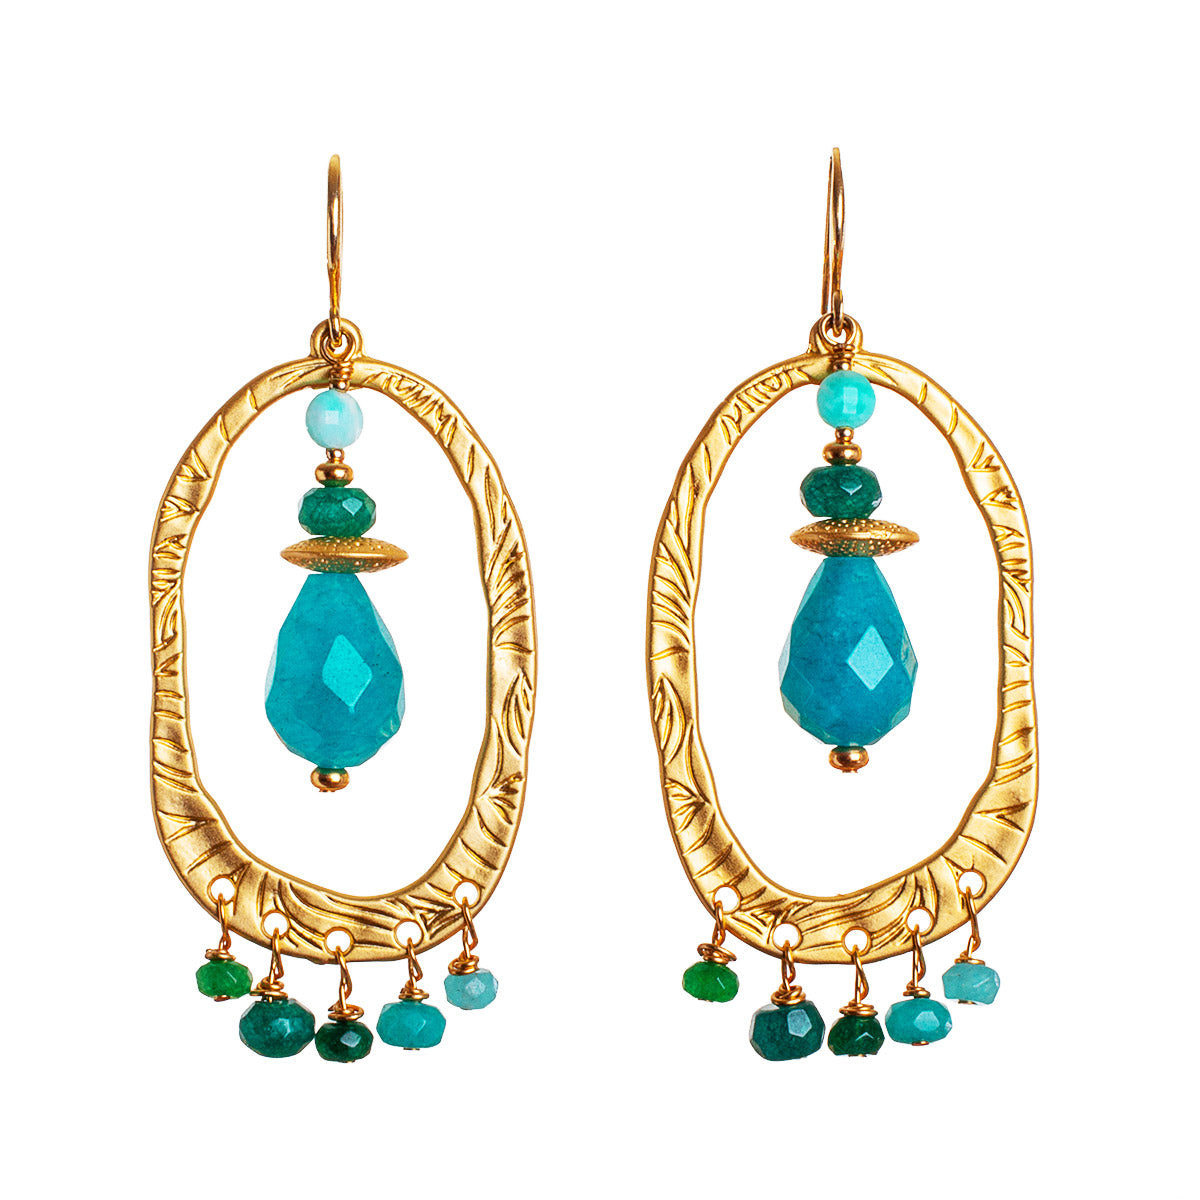 N°671 The Living Sea of Turquoise Dreams Statement Earrings